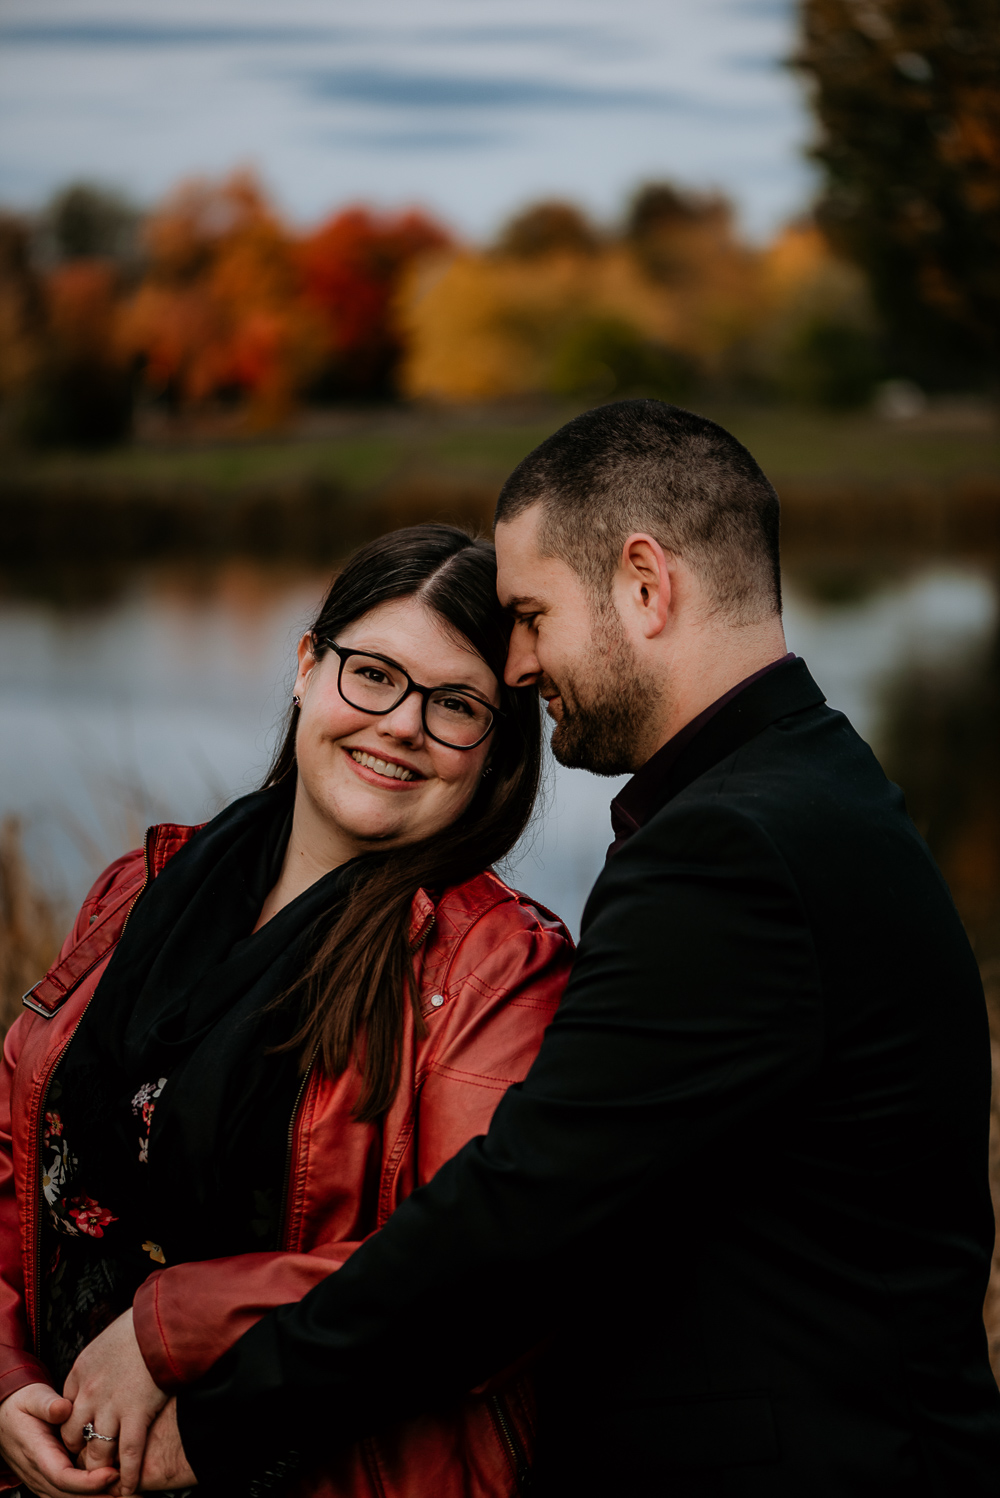 Engaged couple cuddling during their engagement session. Fianc. is leaning his head into his bride as she looks into the camera, smiling. Beautiful fall colours displayed int he trees int he background beyond Dow's Lake.